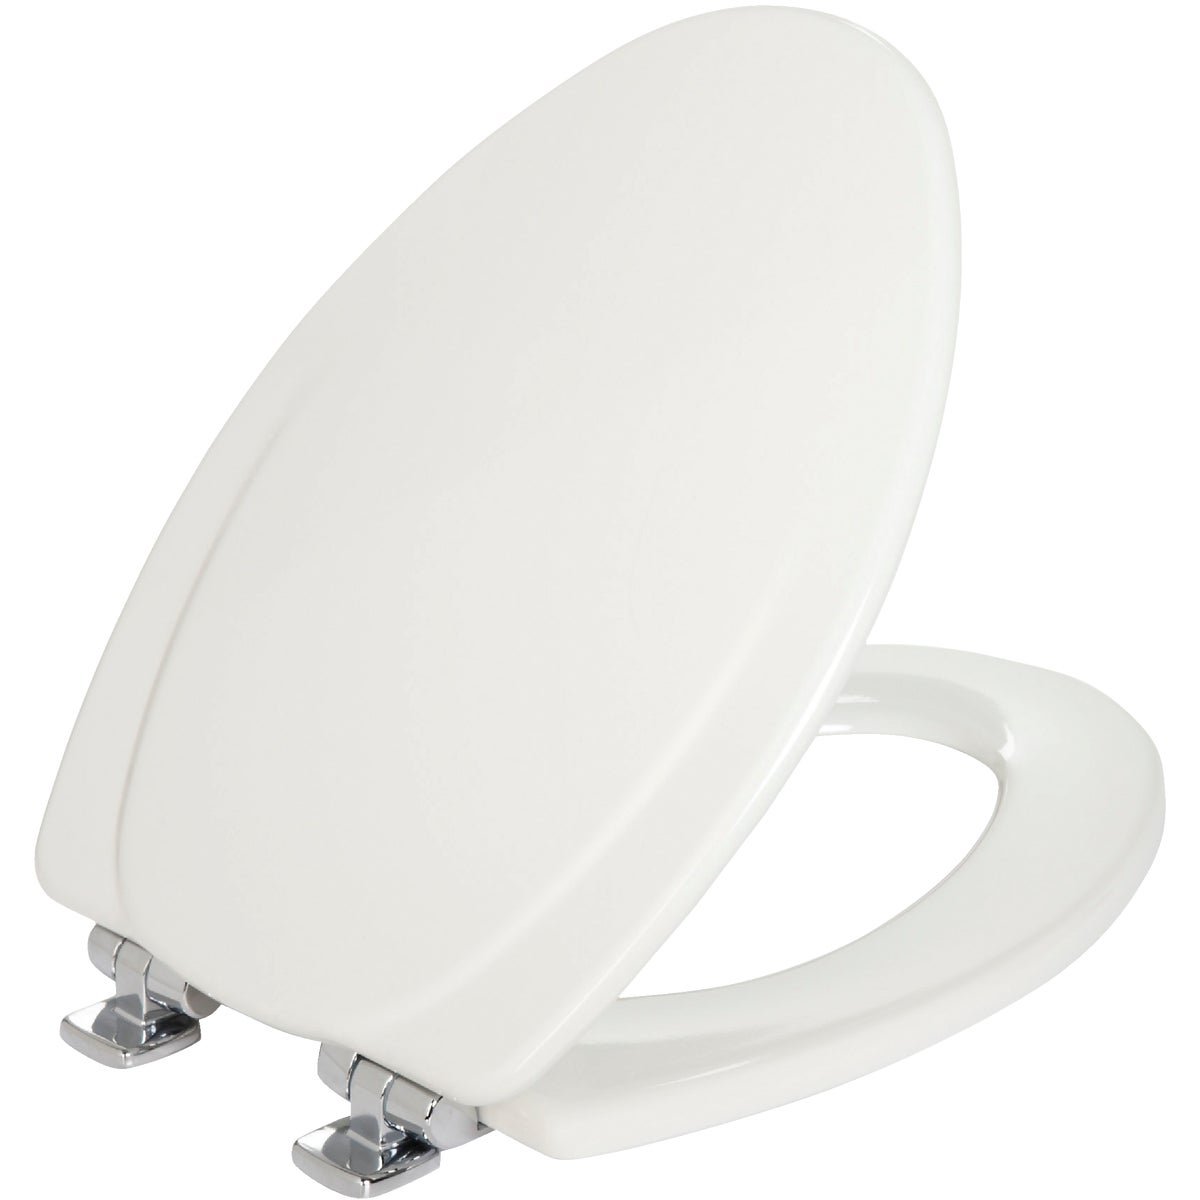 ELONG WOOD TOILET SEAT - 130CHSL-000 by Bemis Mfg